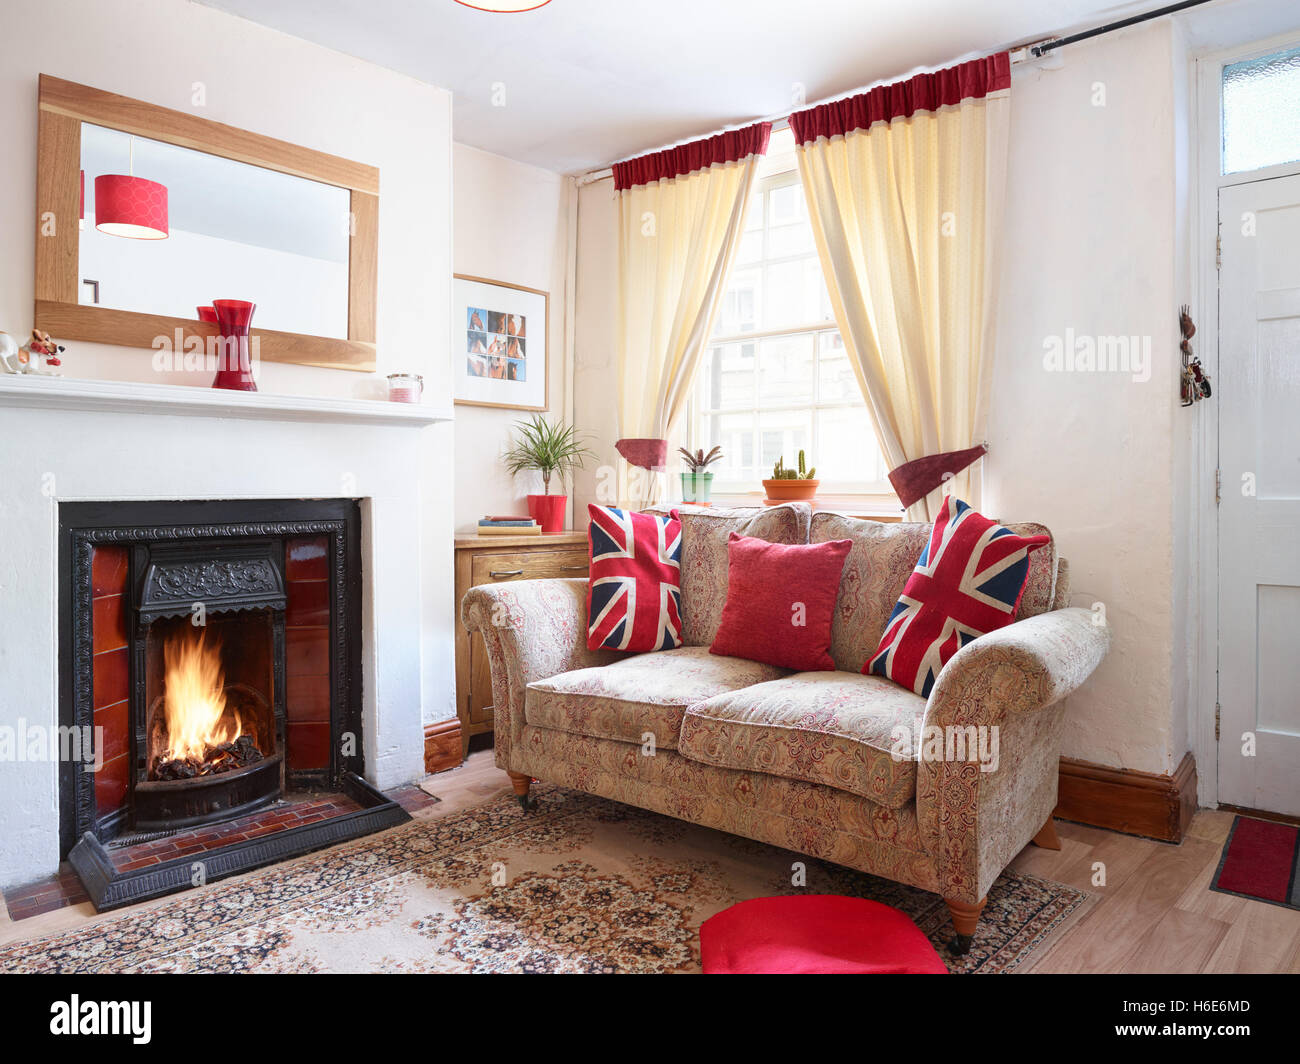 A cosy, small UK living room with roaring fire & sofa adorned with patriotic cushions - Stock Image